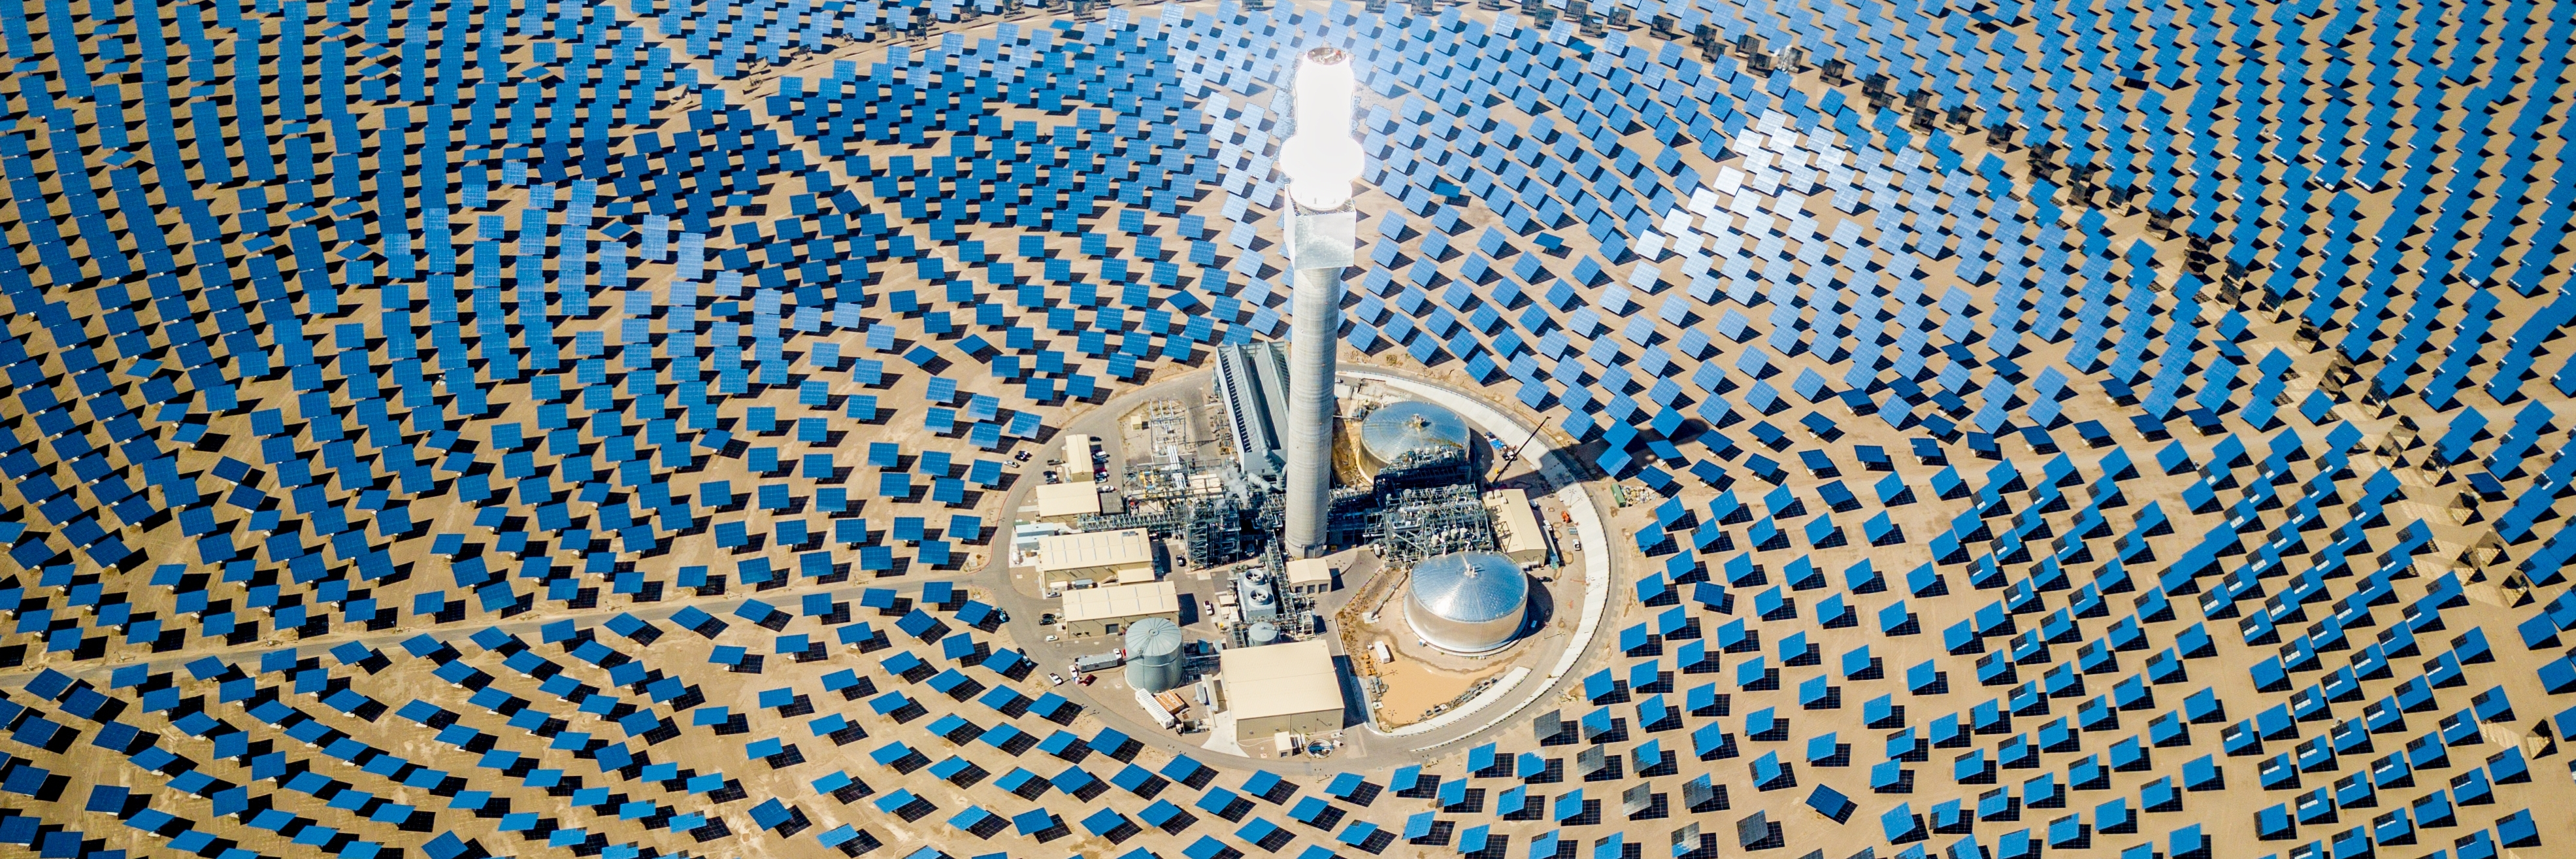 solar thermal power plant station